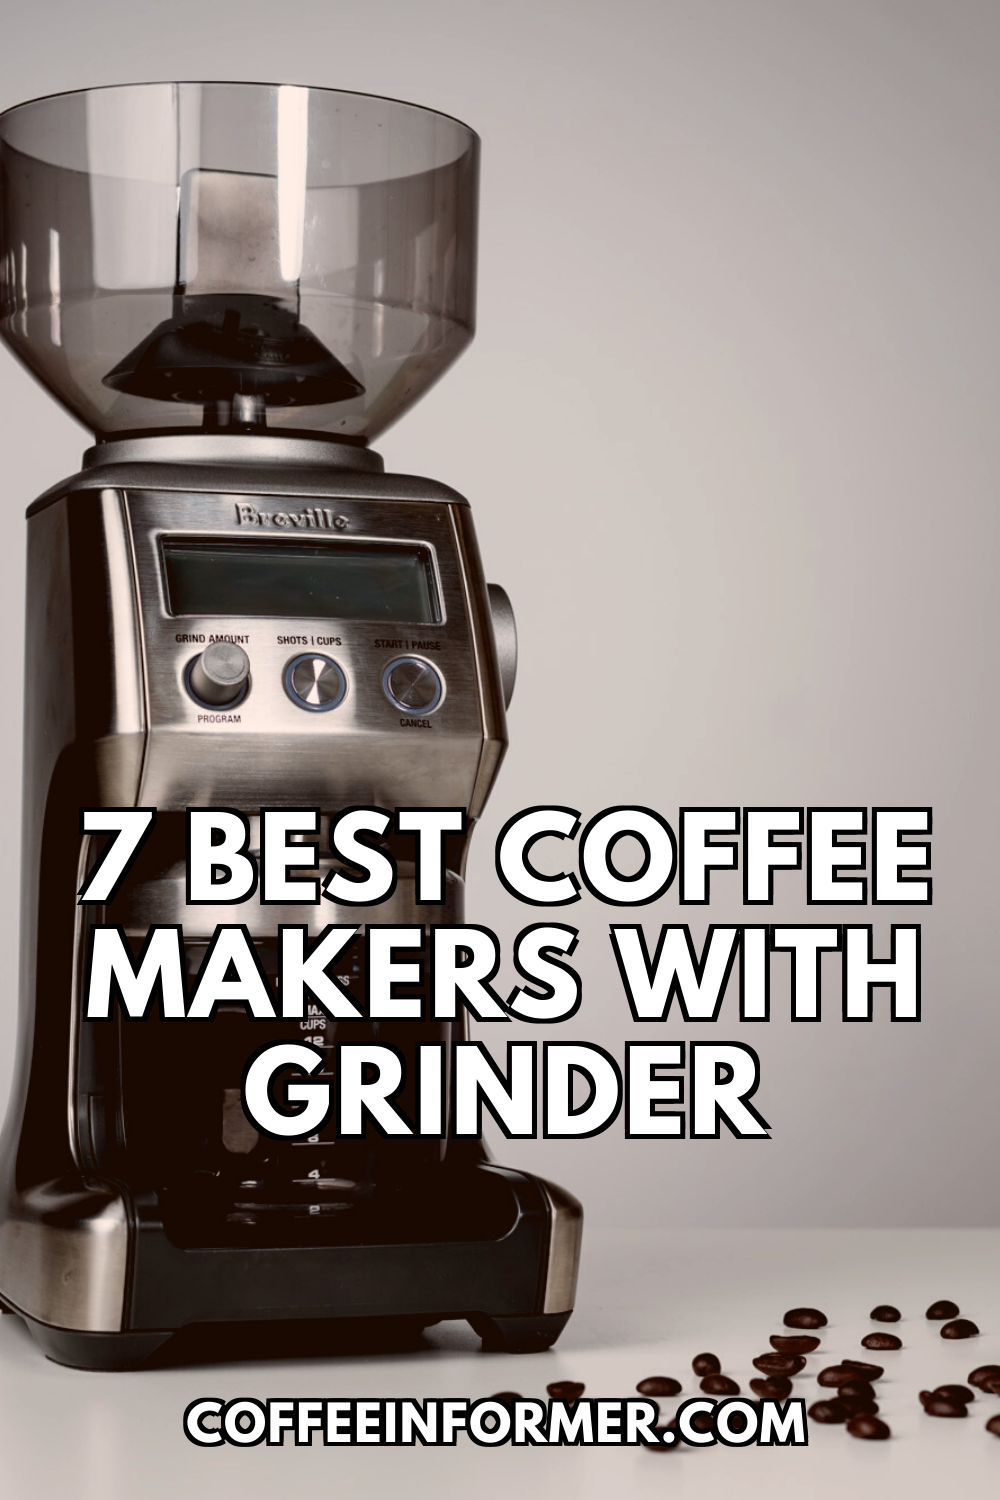 Top 7 Best Coffee Makers With Grinder Coffee Informer In 2020 Coffee Maker With Grinder Best Coffee Maker Pour Over Coffee Maker